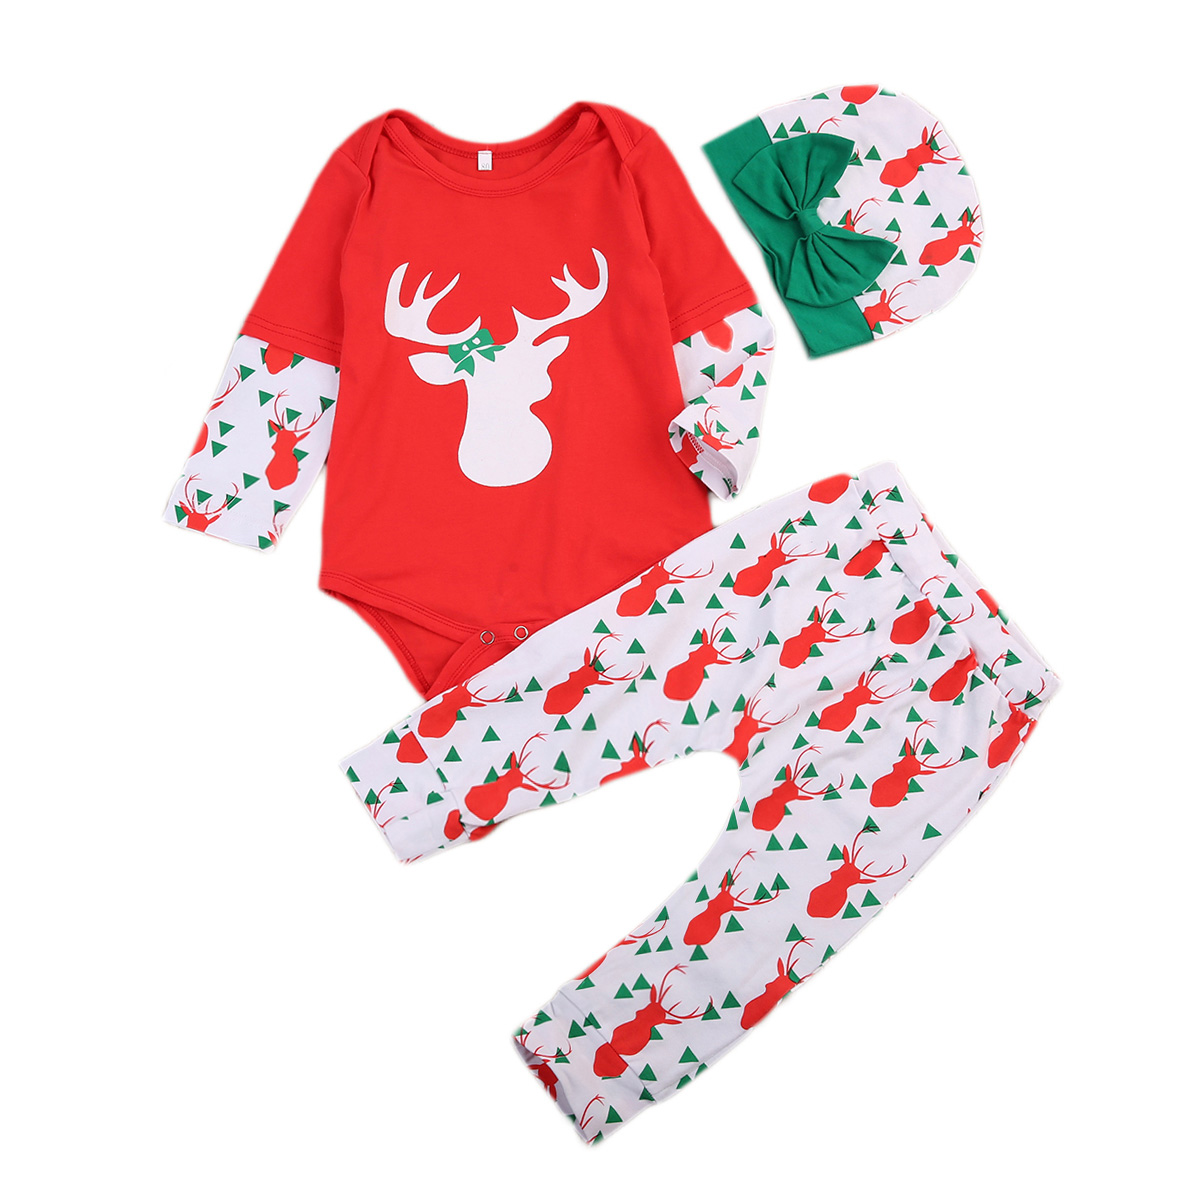 2017 Christmas Baby Girls Clothes Newborn Toddler Baby Boy Girl Tops Deer Romper+Pants 3Pcs Outfits Baby Clothes Set Size 0-24M